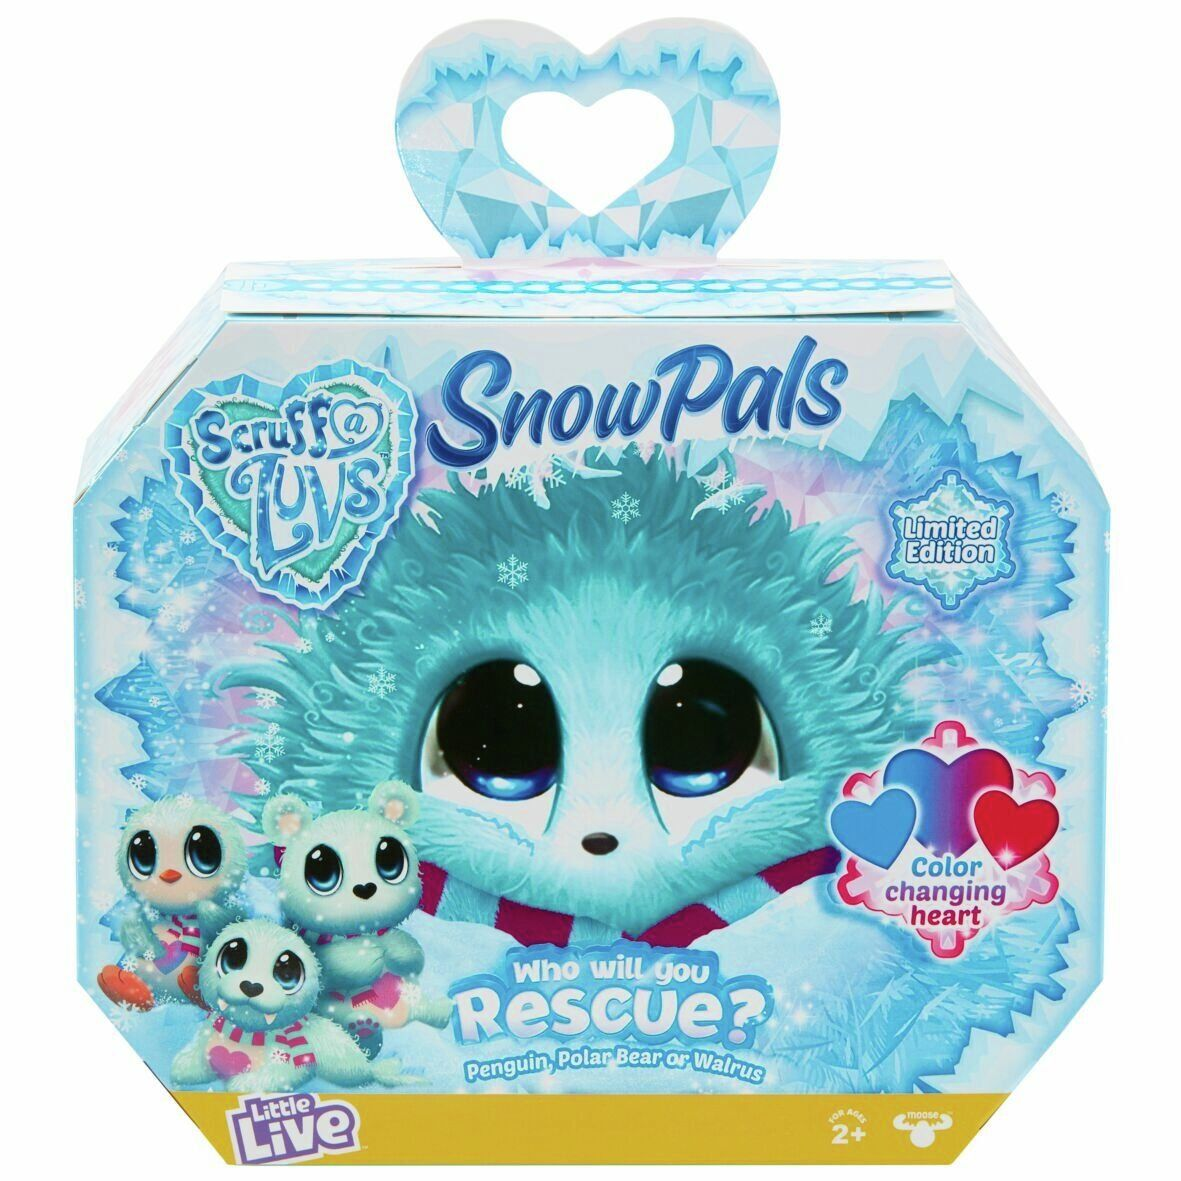 Scruff A Luvs Rescue Pet Surprise Soft Toy Snow Pals In 2020 Little Live Pets Toys For Girls Kids Toys